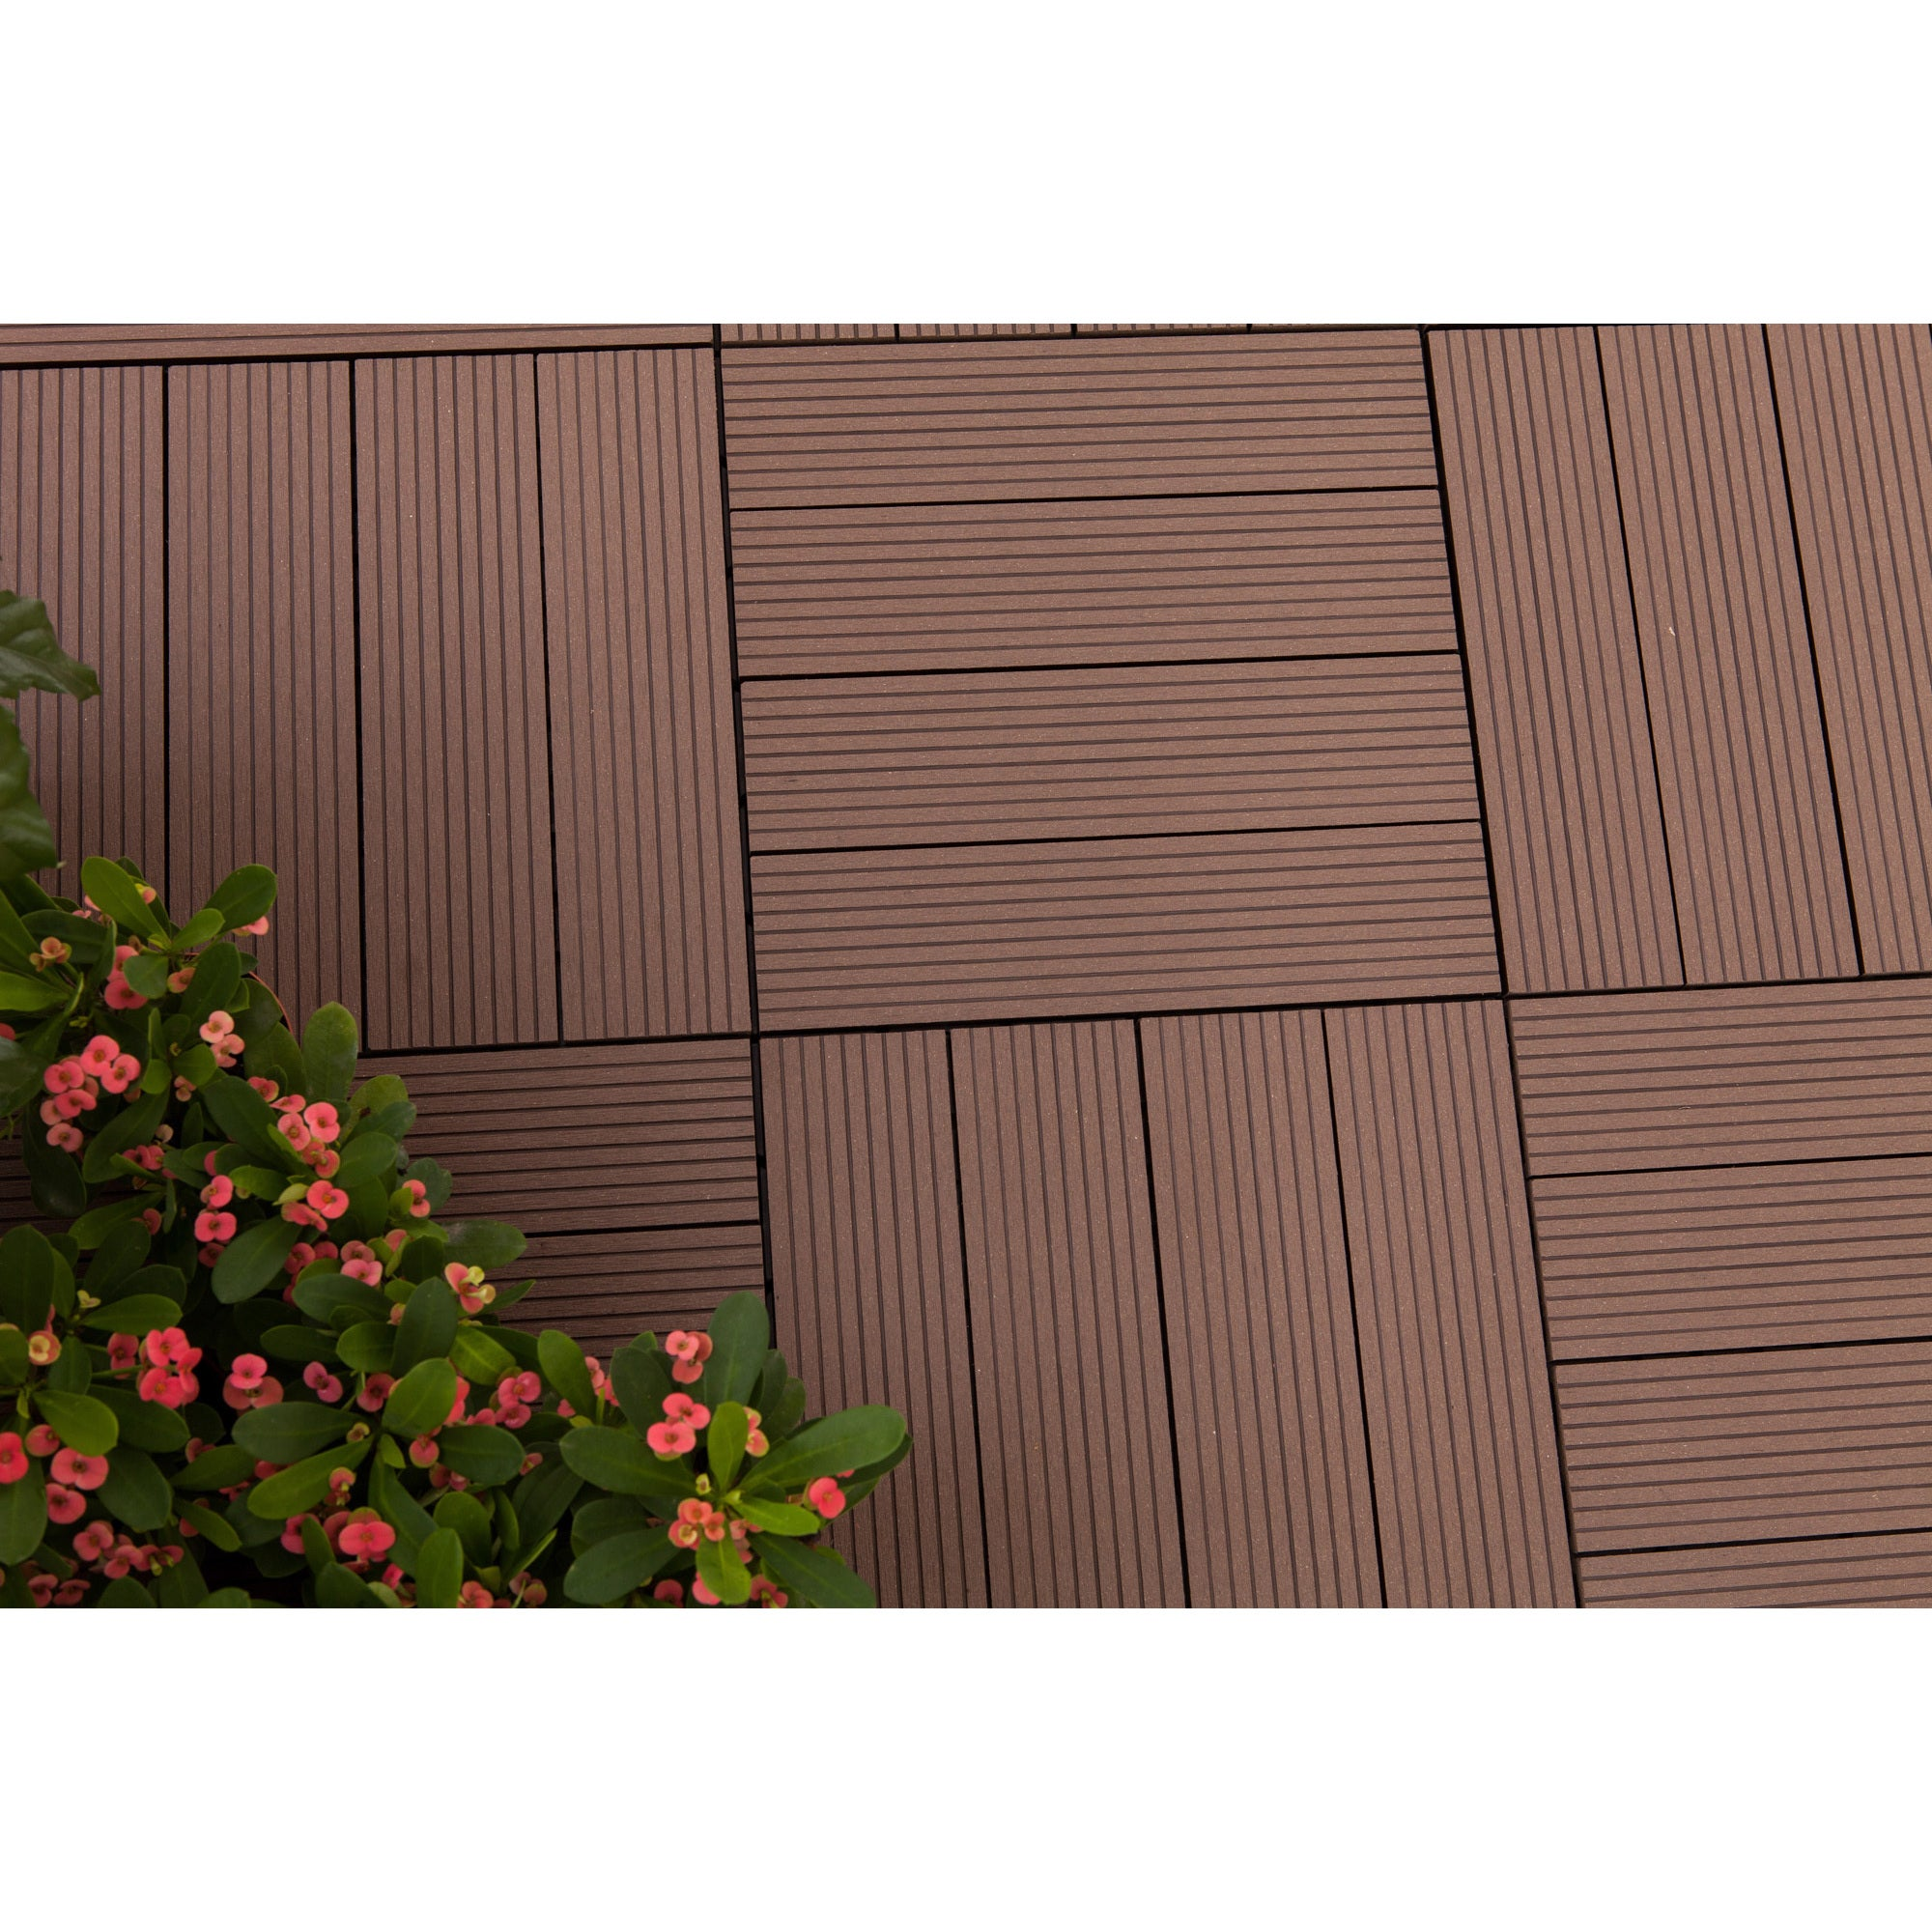 Vifah MetaWood Deck Tiles, Composite Ipe, Snap To Install...